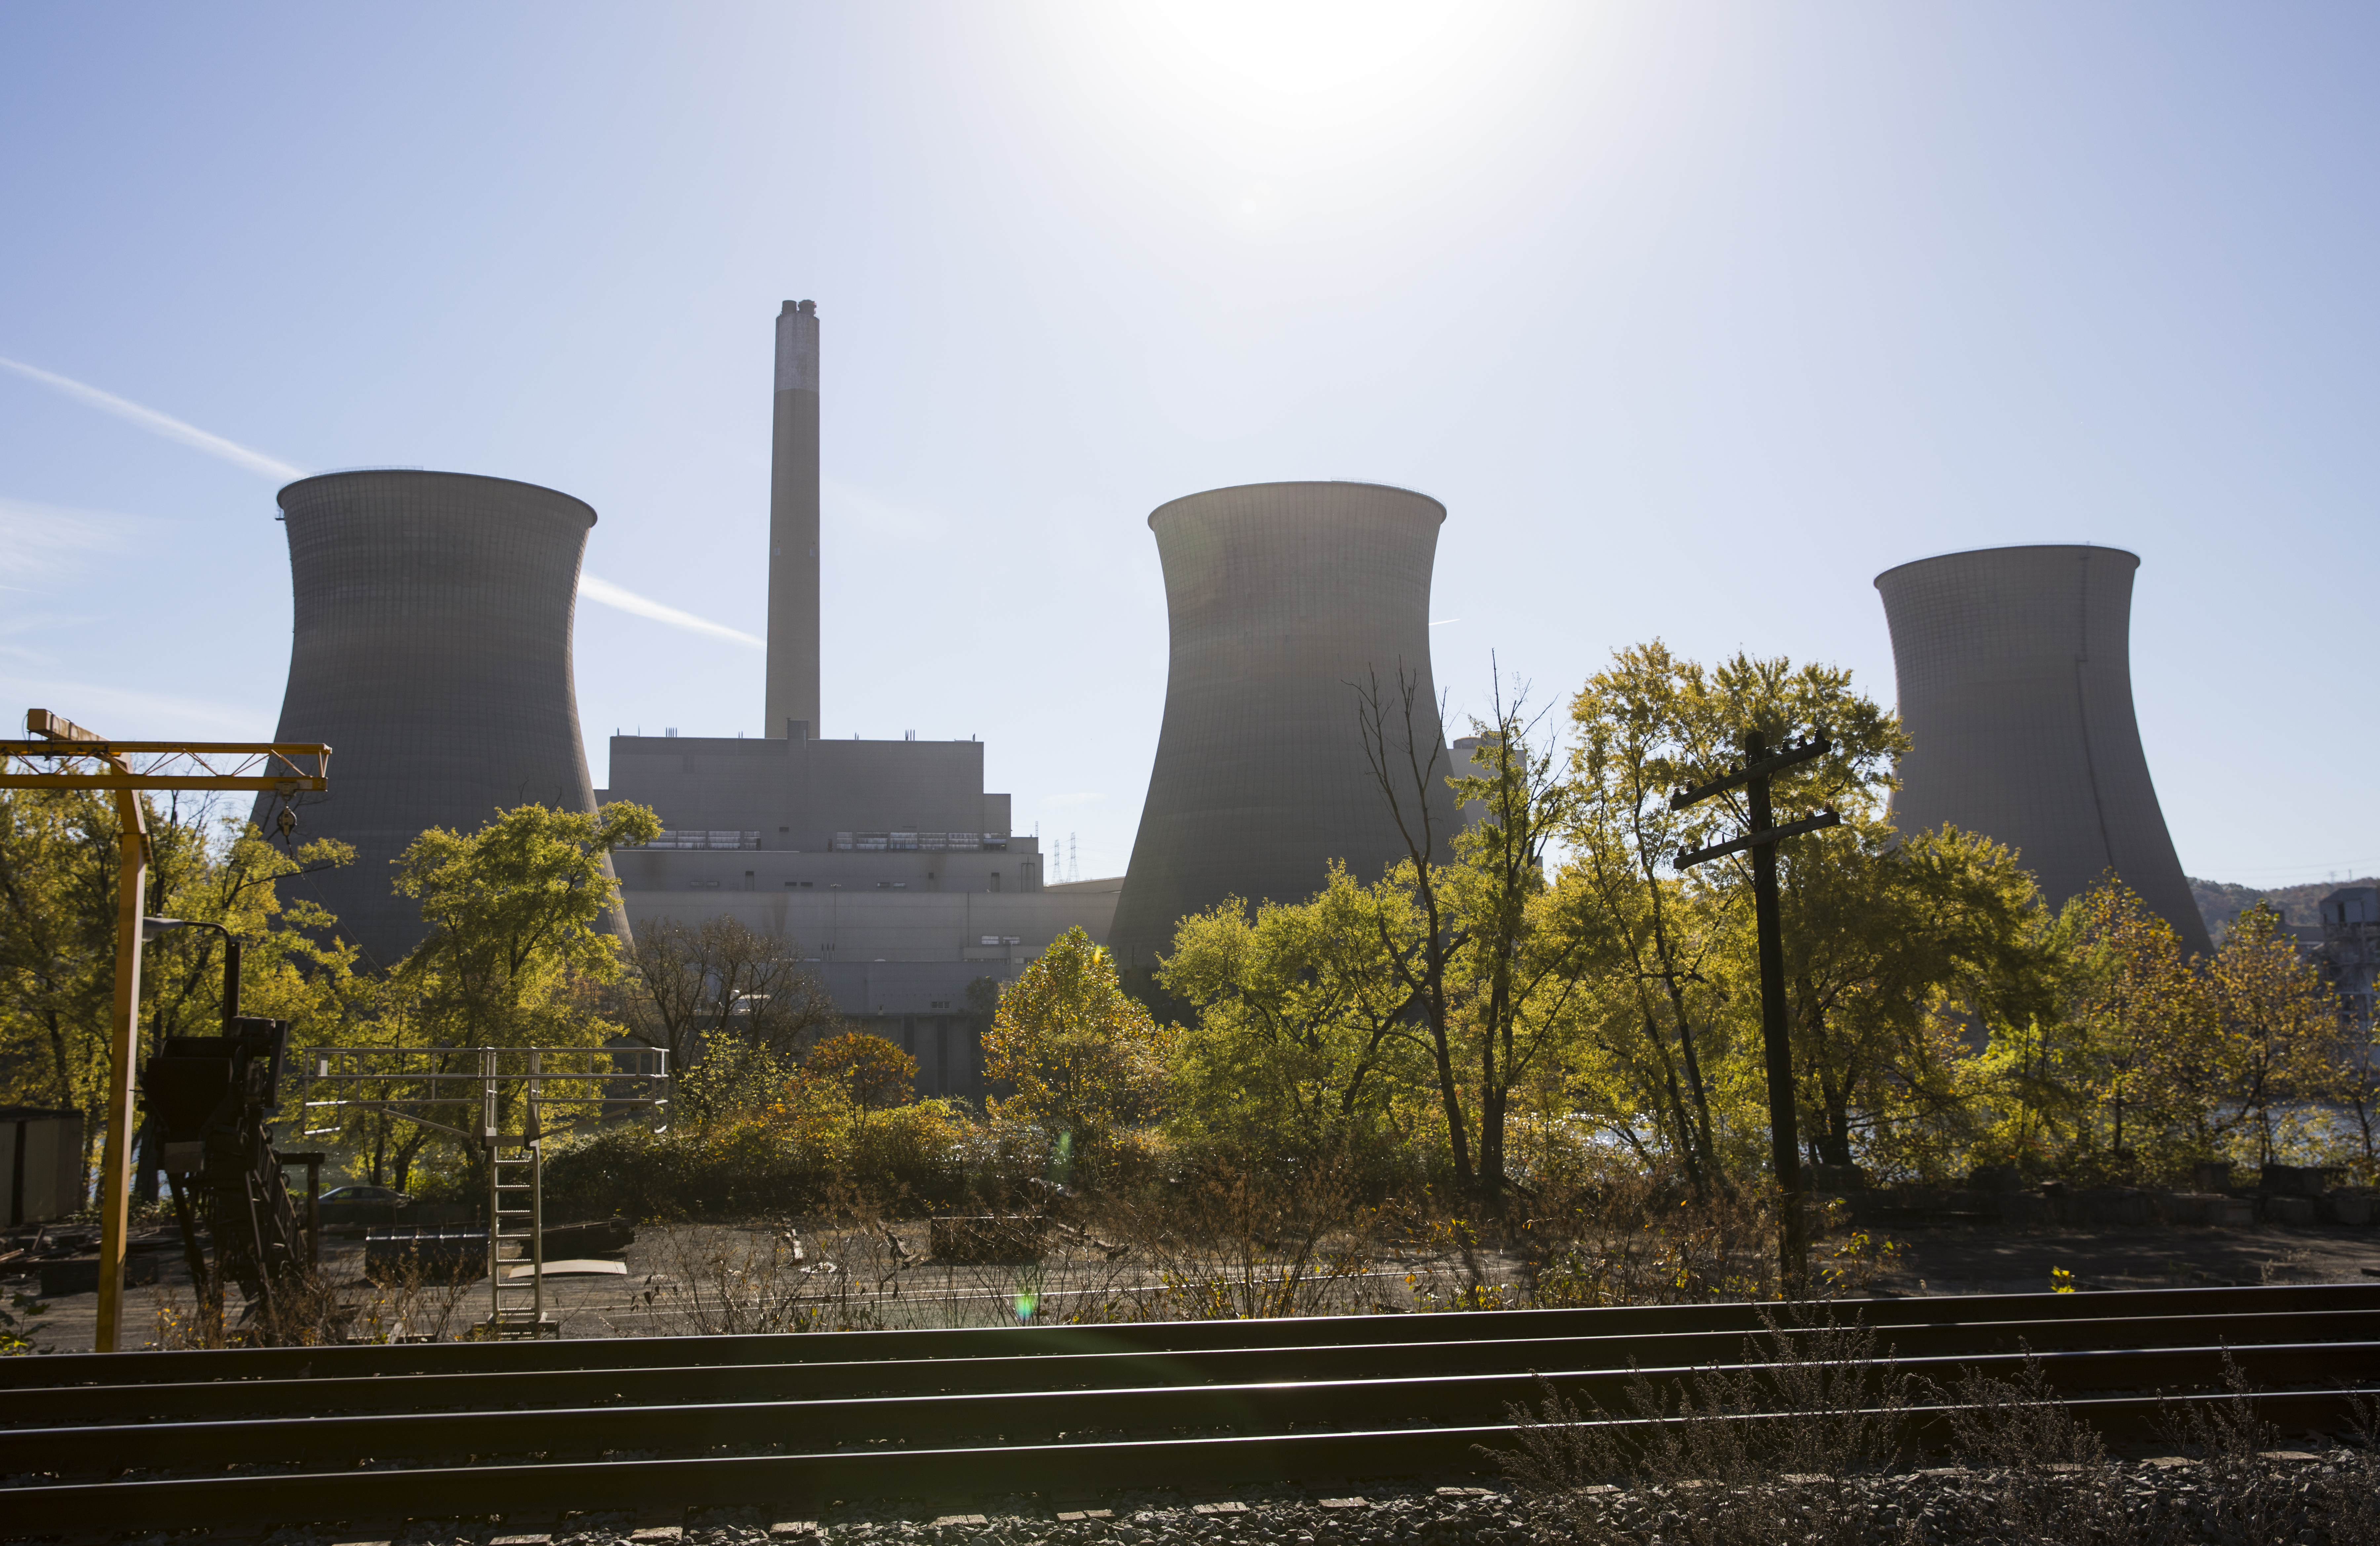 Coal Nuclear Plant Operator Files For Bankruptcy Asks Trump A Power Layout And Operation View Of The Inactive Cooling Towers At Firstenergy Corporations Bruce Mansfield Fired October 27 2017 In Shippingport Pennsylvania